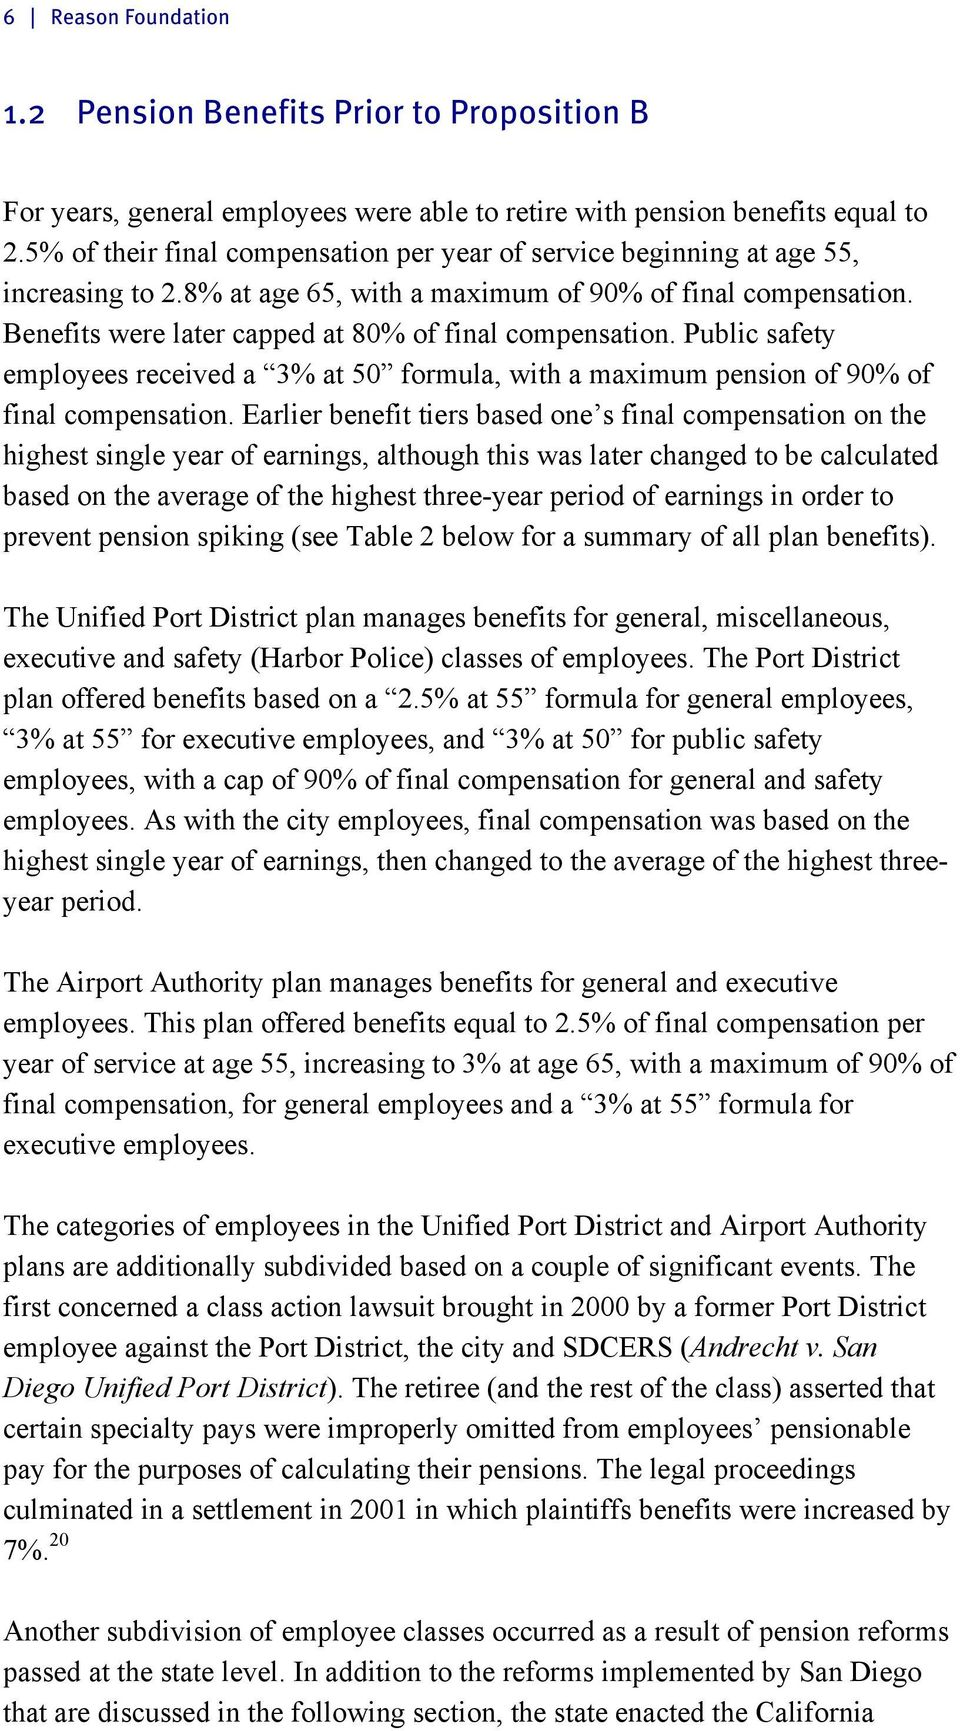 Benefits were later capped at 80% of final compensation. Public safety employees received a 3% at 50 formula, with a maximum pension of 90% of final compensation.